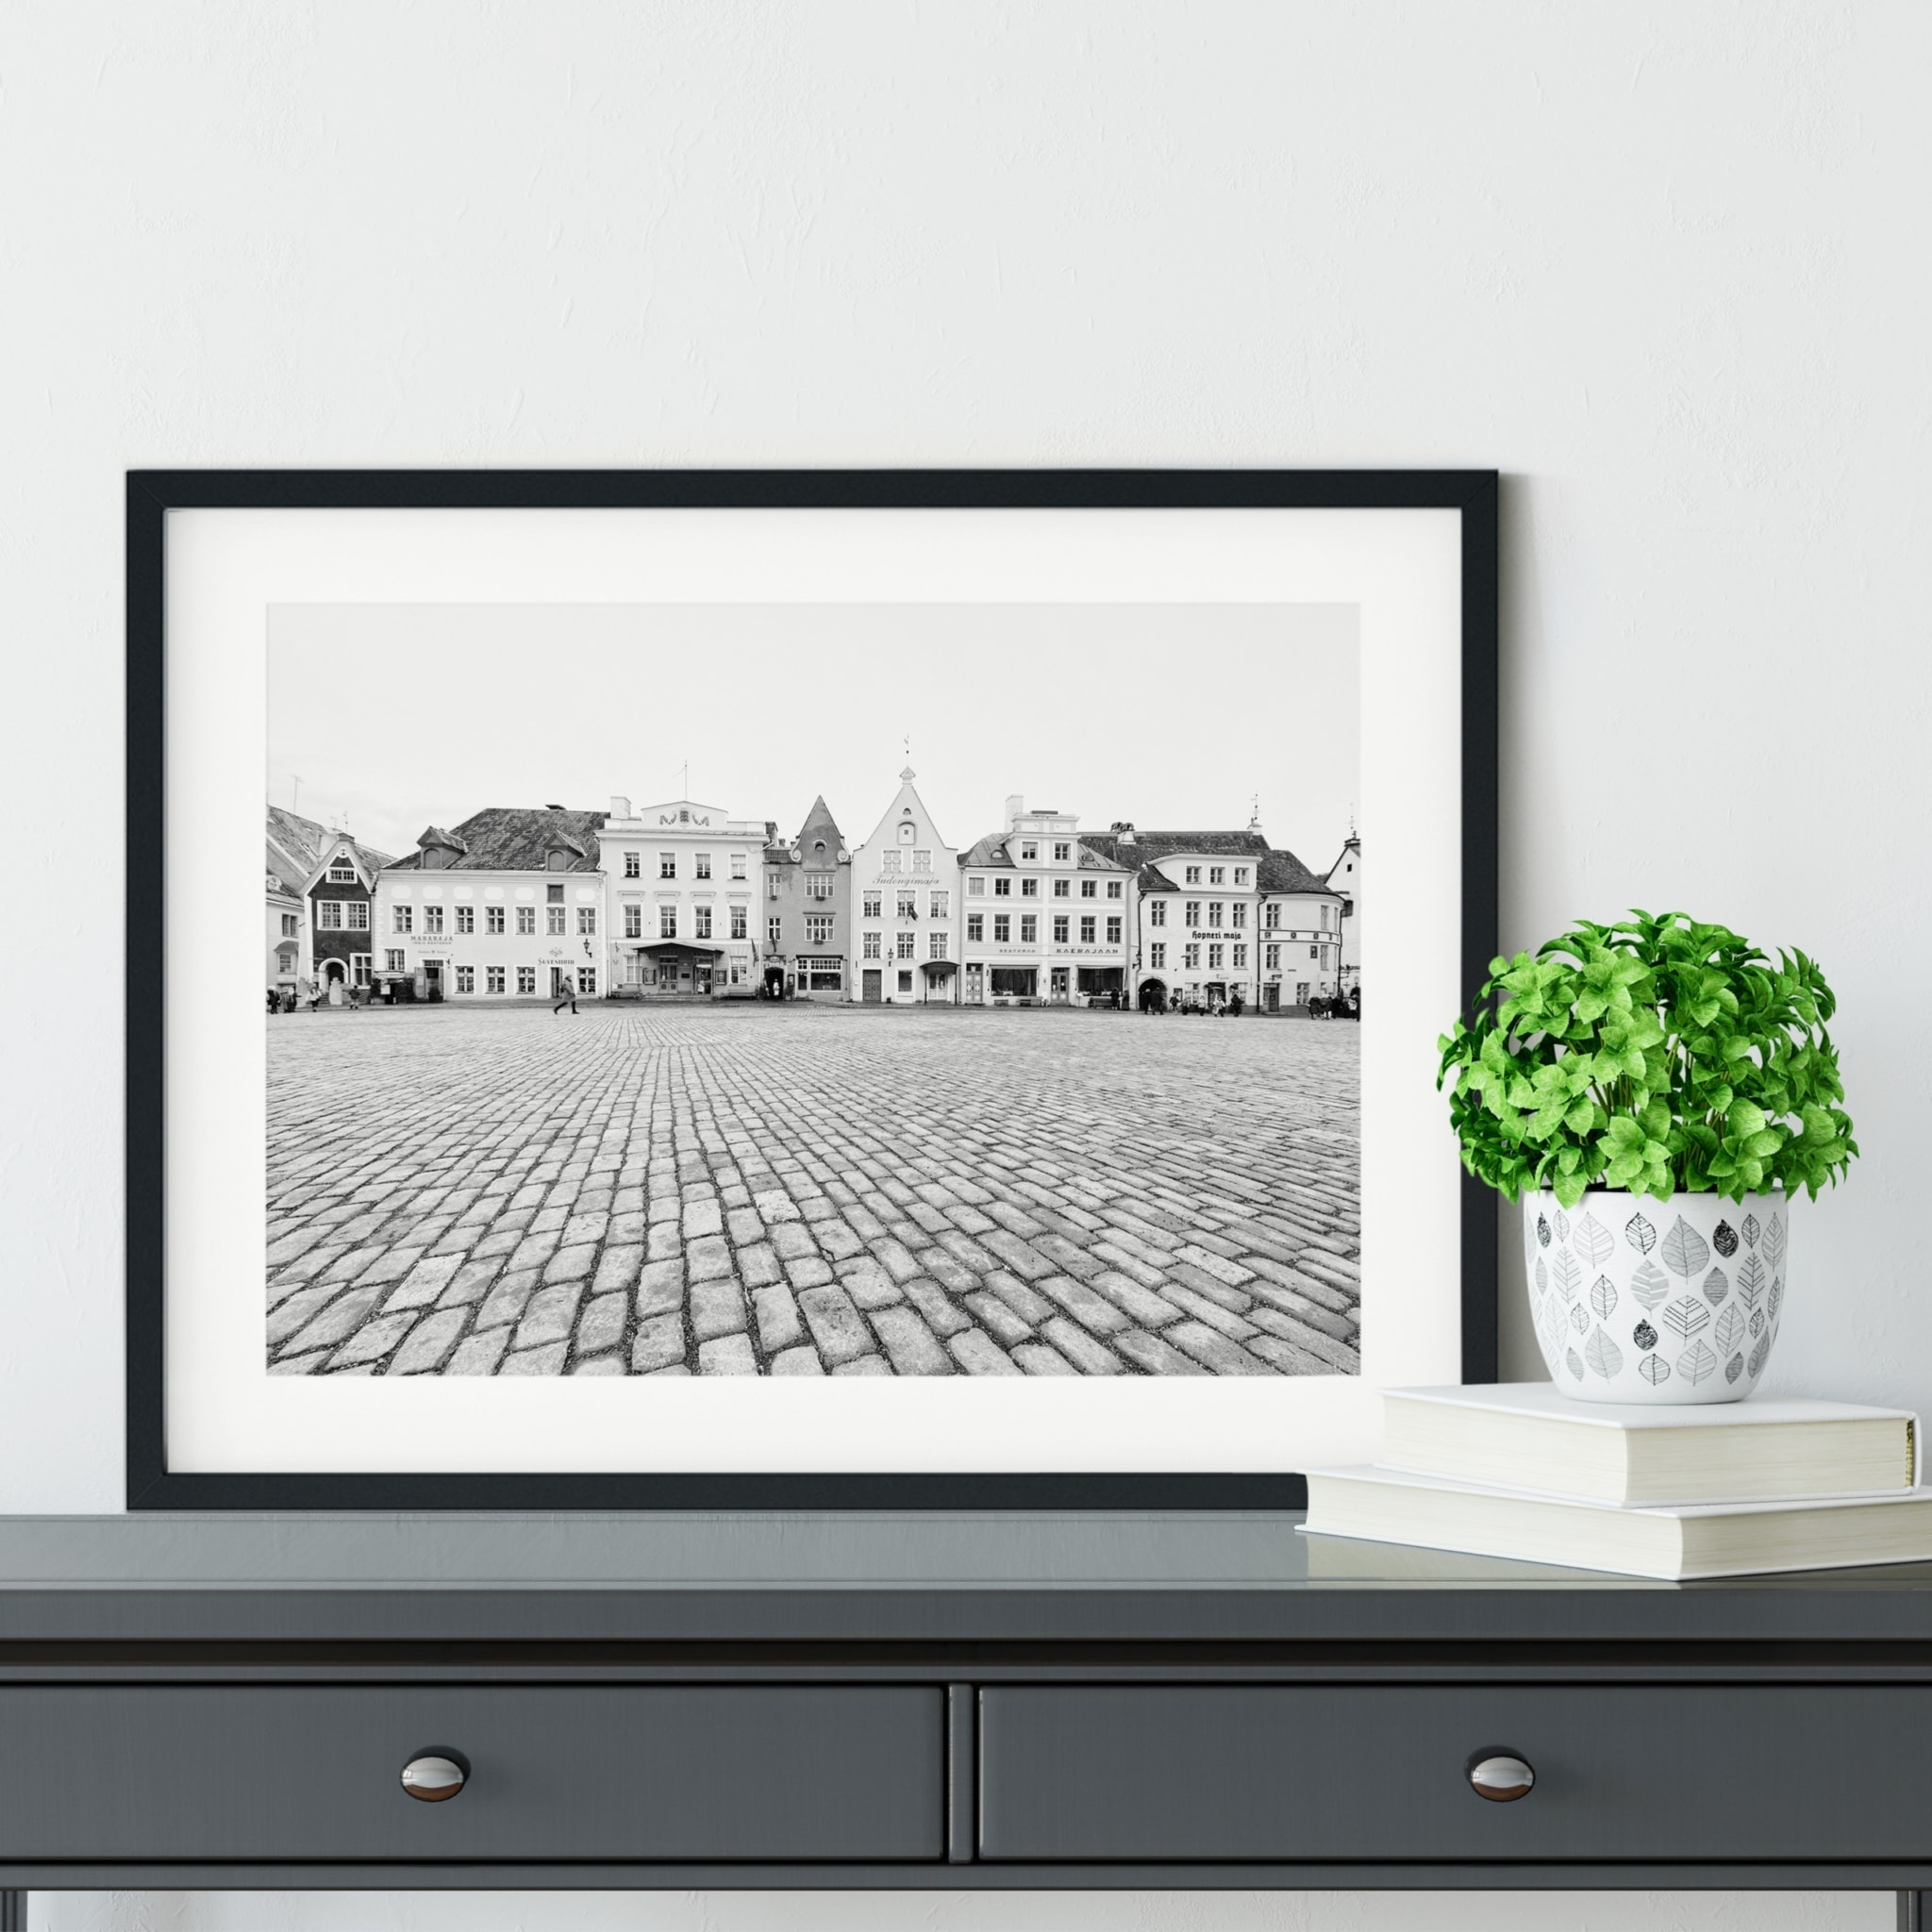 Tallinn Raekoja Platz Print in black frame on the shelf